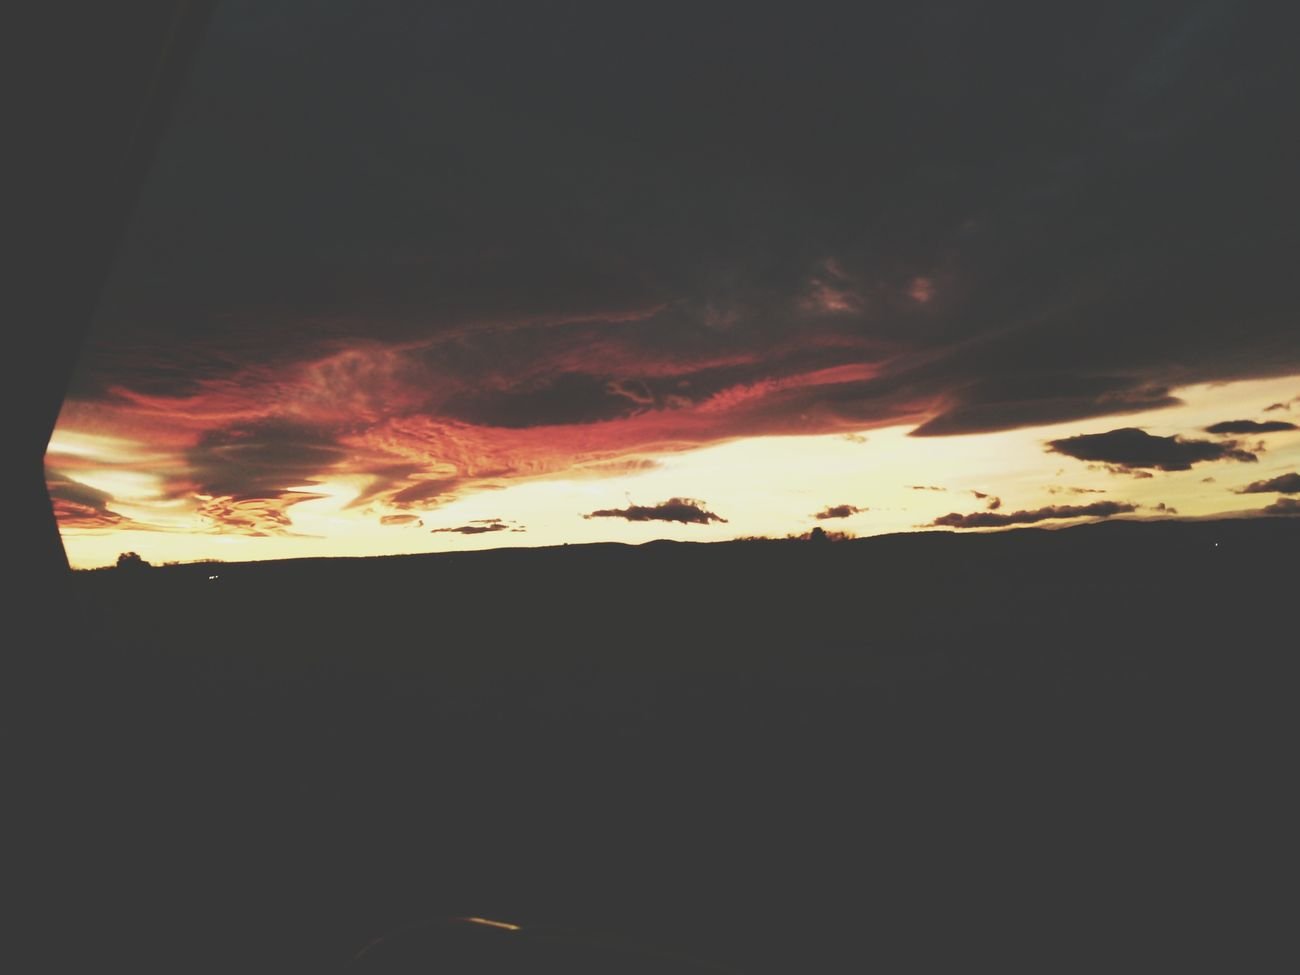 Sunset #sunrise #sun #TagsForLikes #TFLers #pretty #beautiful #red #orange #pink #sky #skyporn #cloudporn #nature #clouds #horizon #photooftheday #instagood #gorgeous #warm #view #night #morning #silhouette Instasky All_sunsets